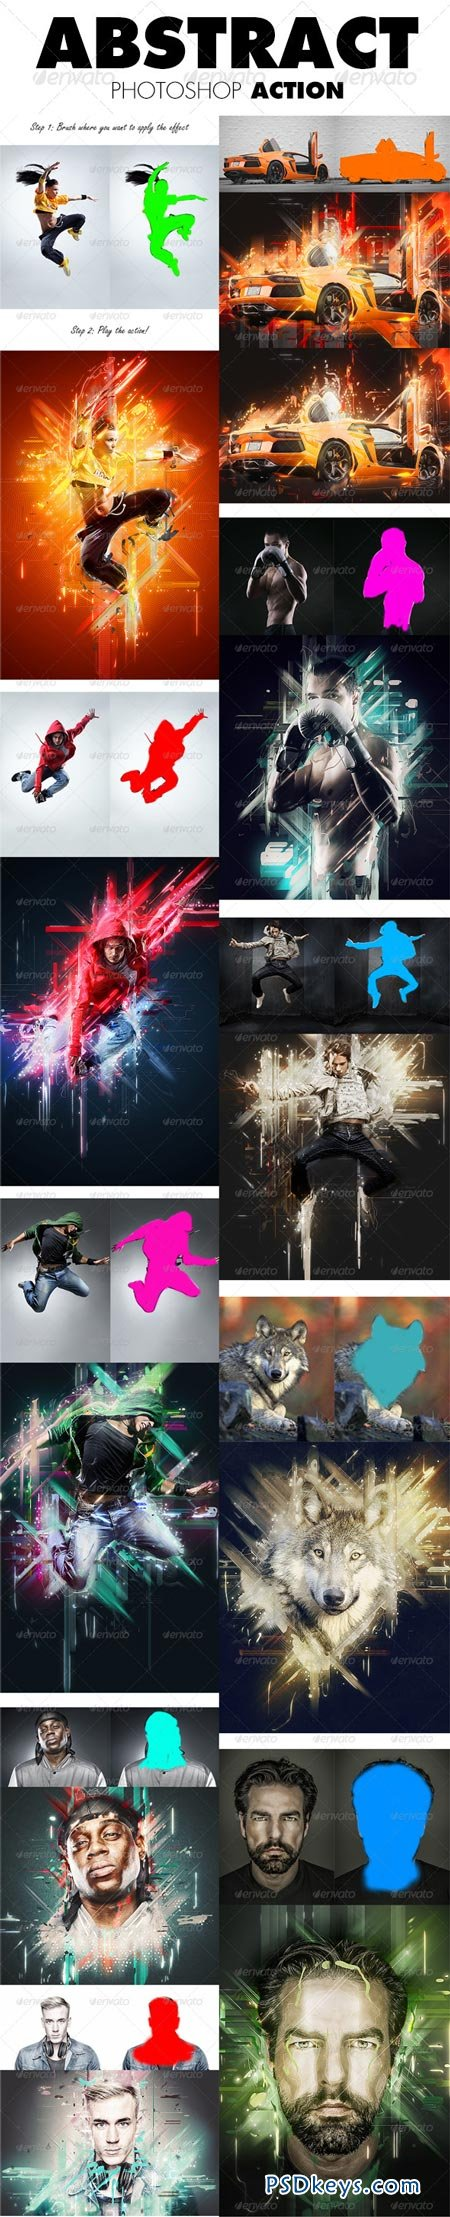 Abstract Photoshop Action 8677875